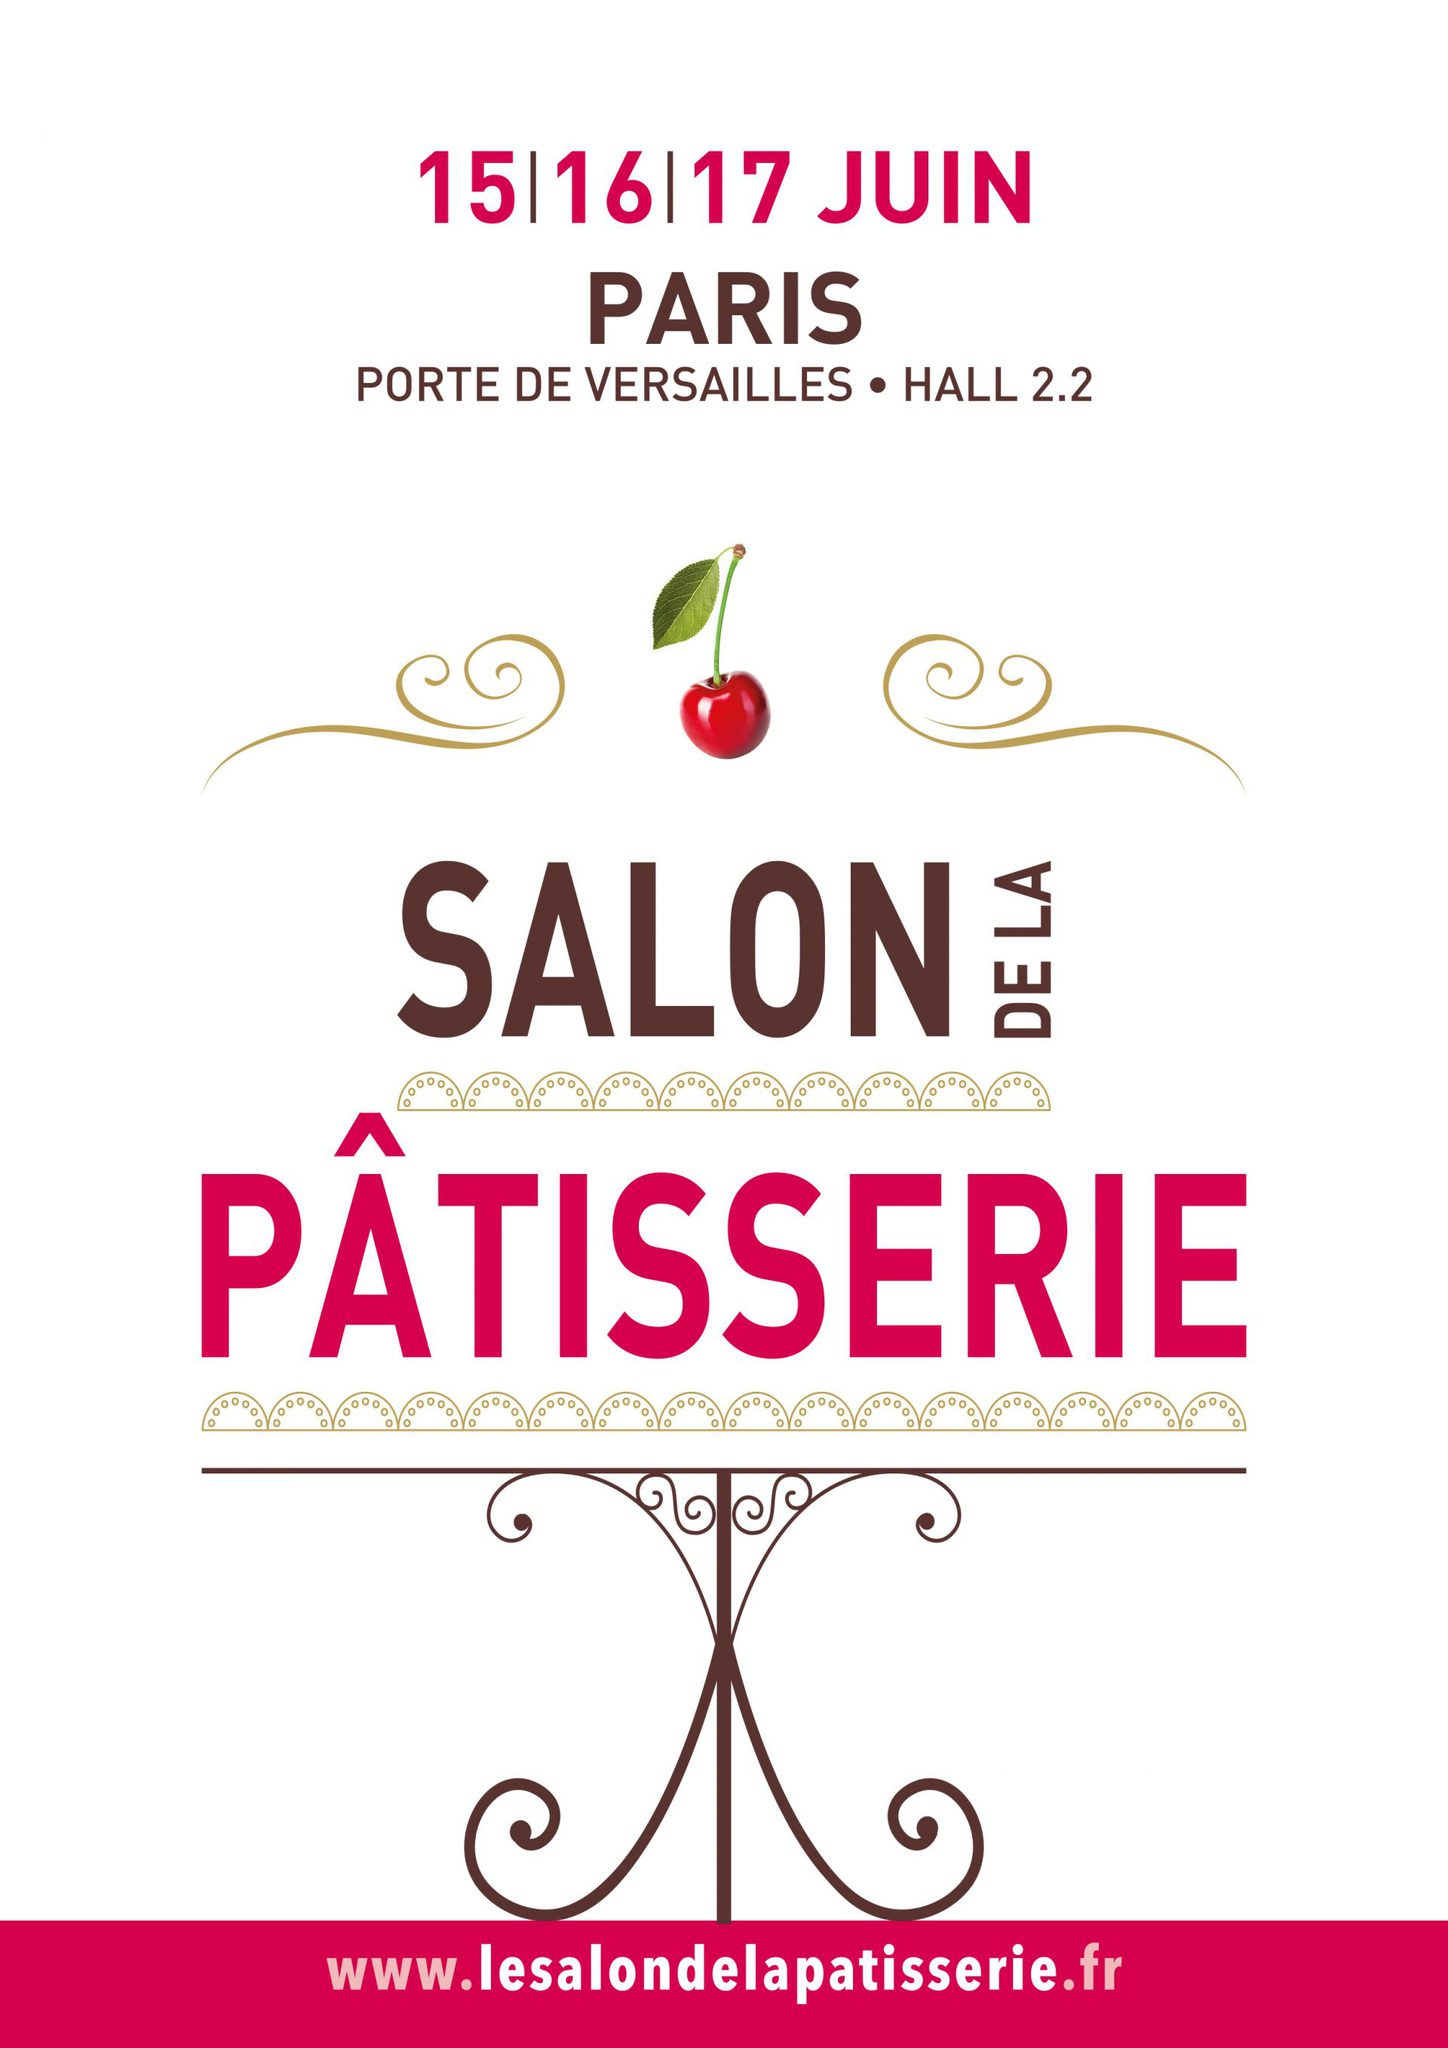 Salon patisserie 2018